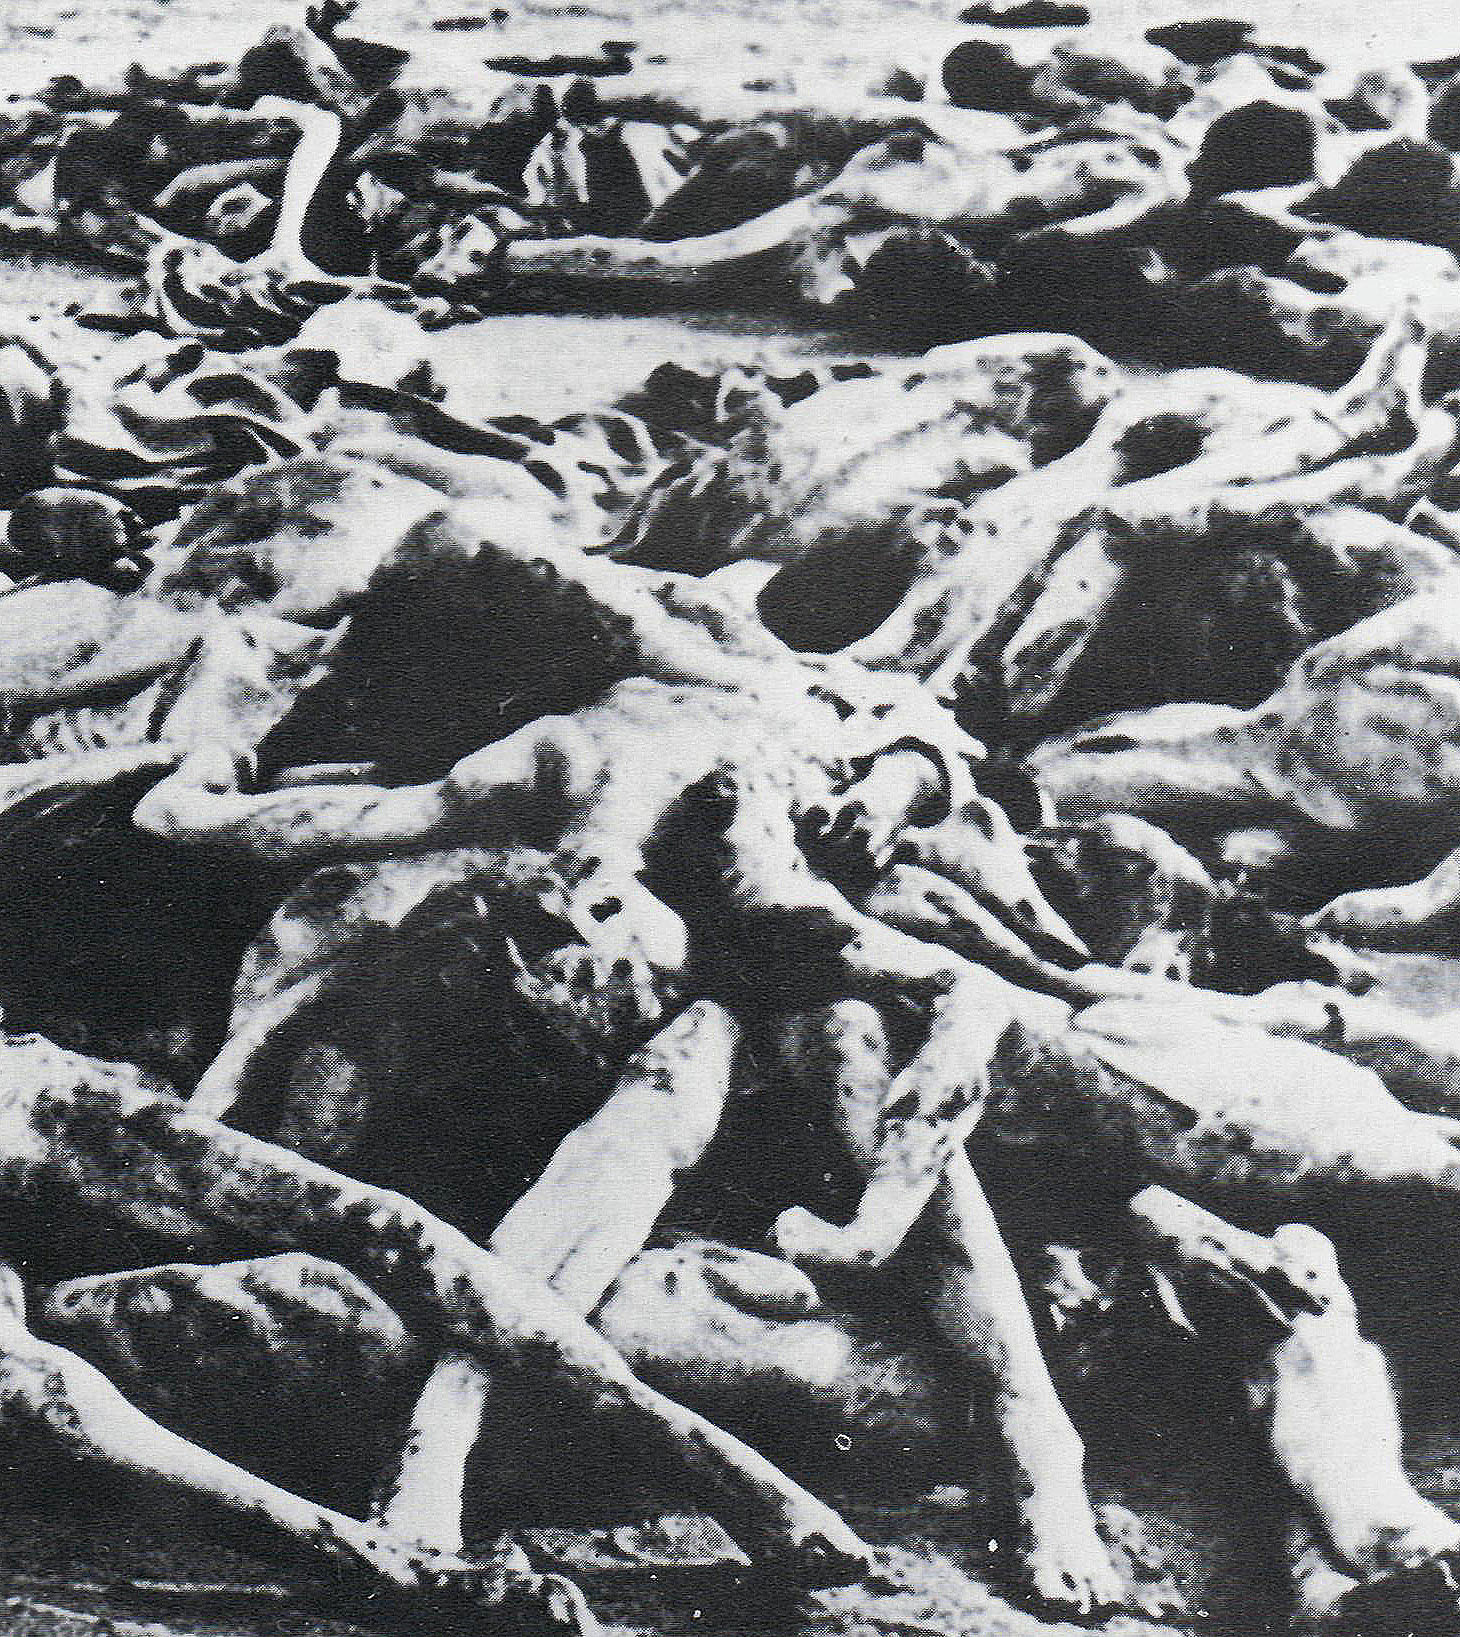 a research on concentration camp What was a nazi concentration camp created by tom haward our research shows that students have a limited, often auschwitz-centric, understanding of the nazi concentration.